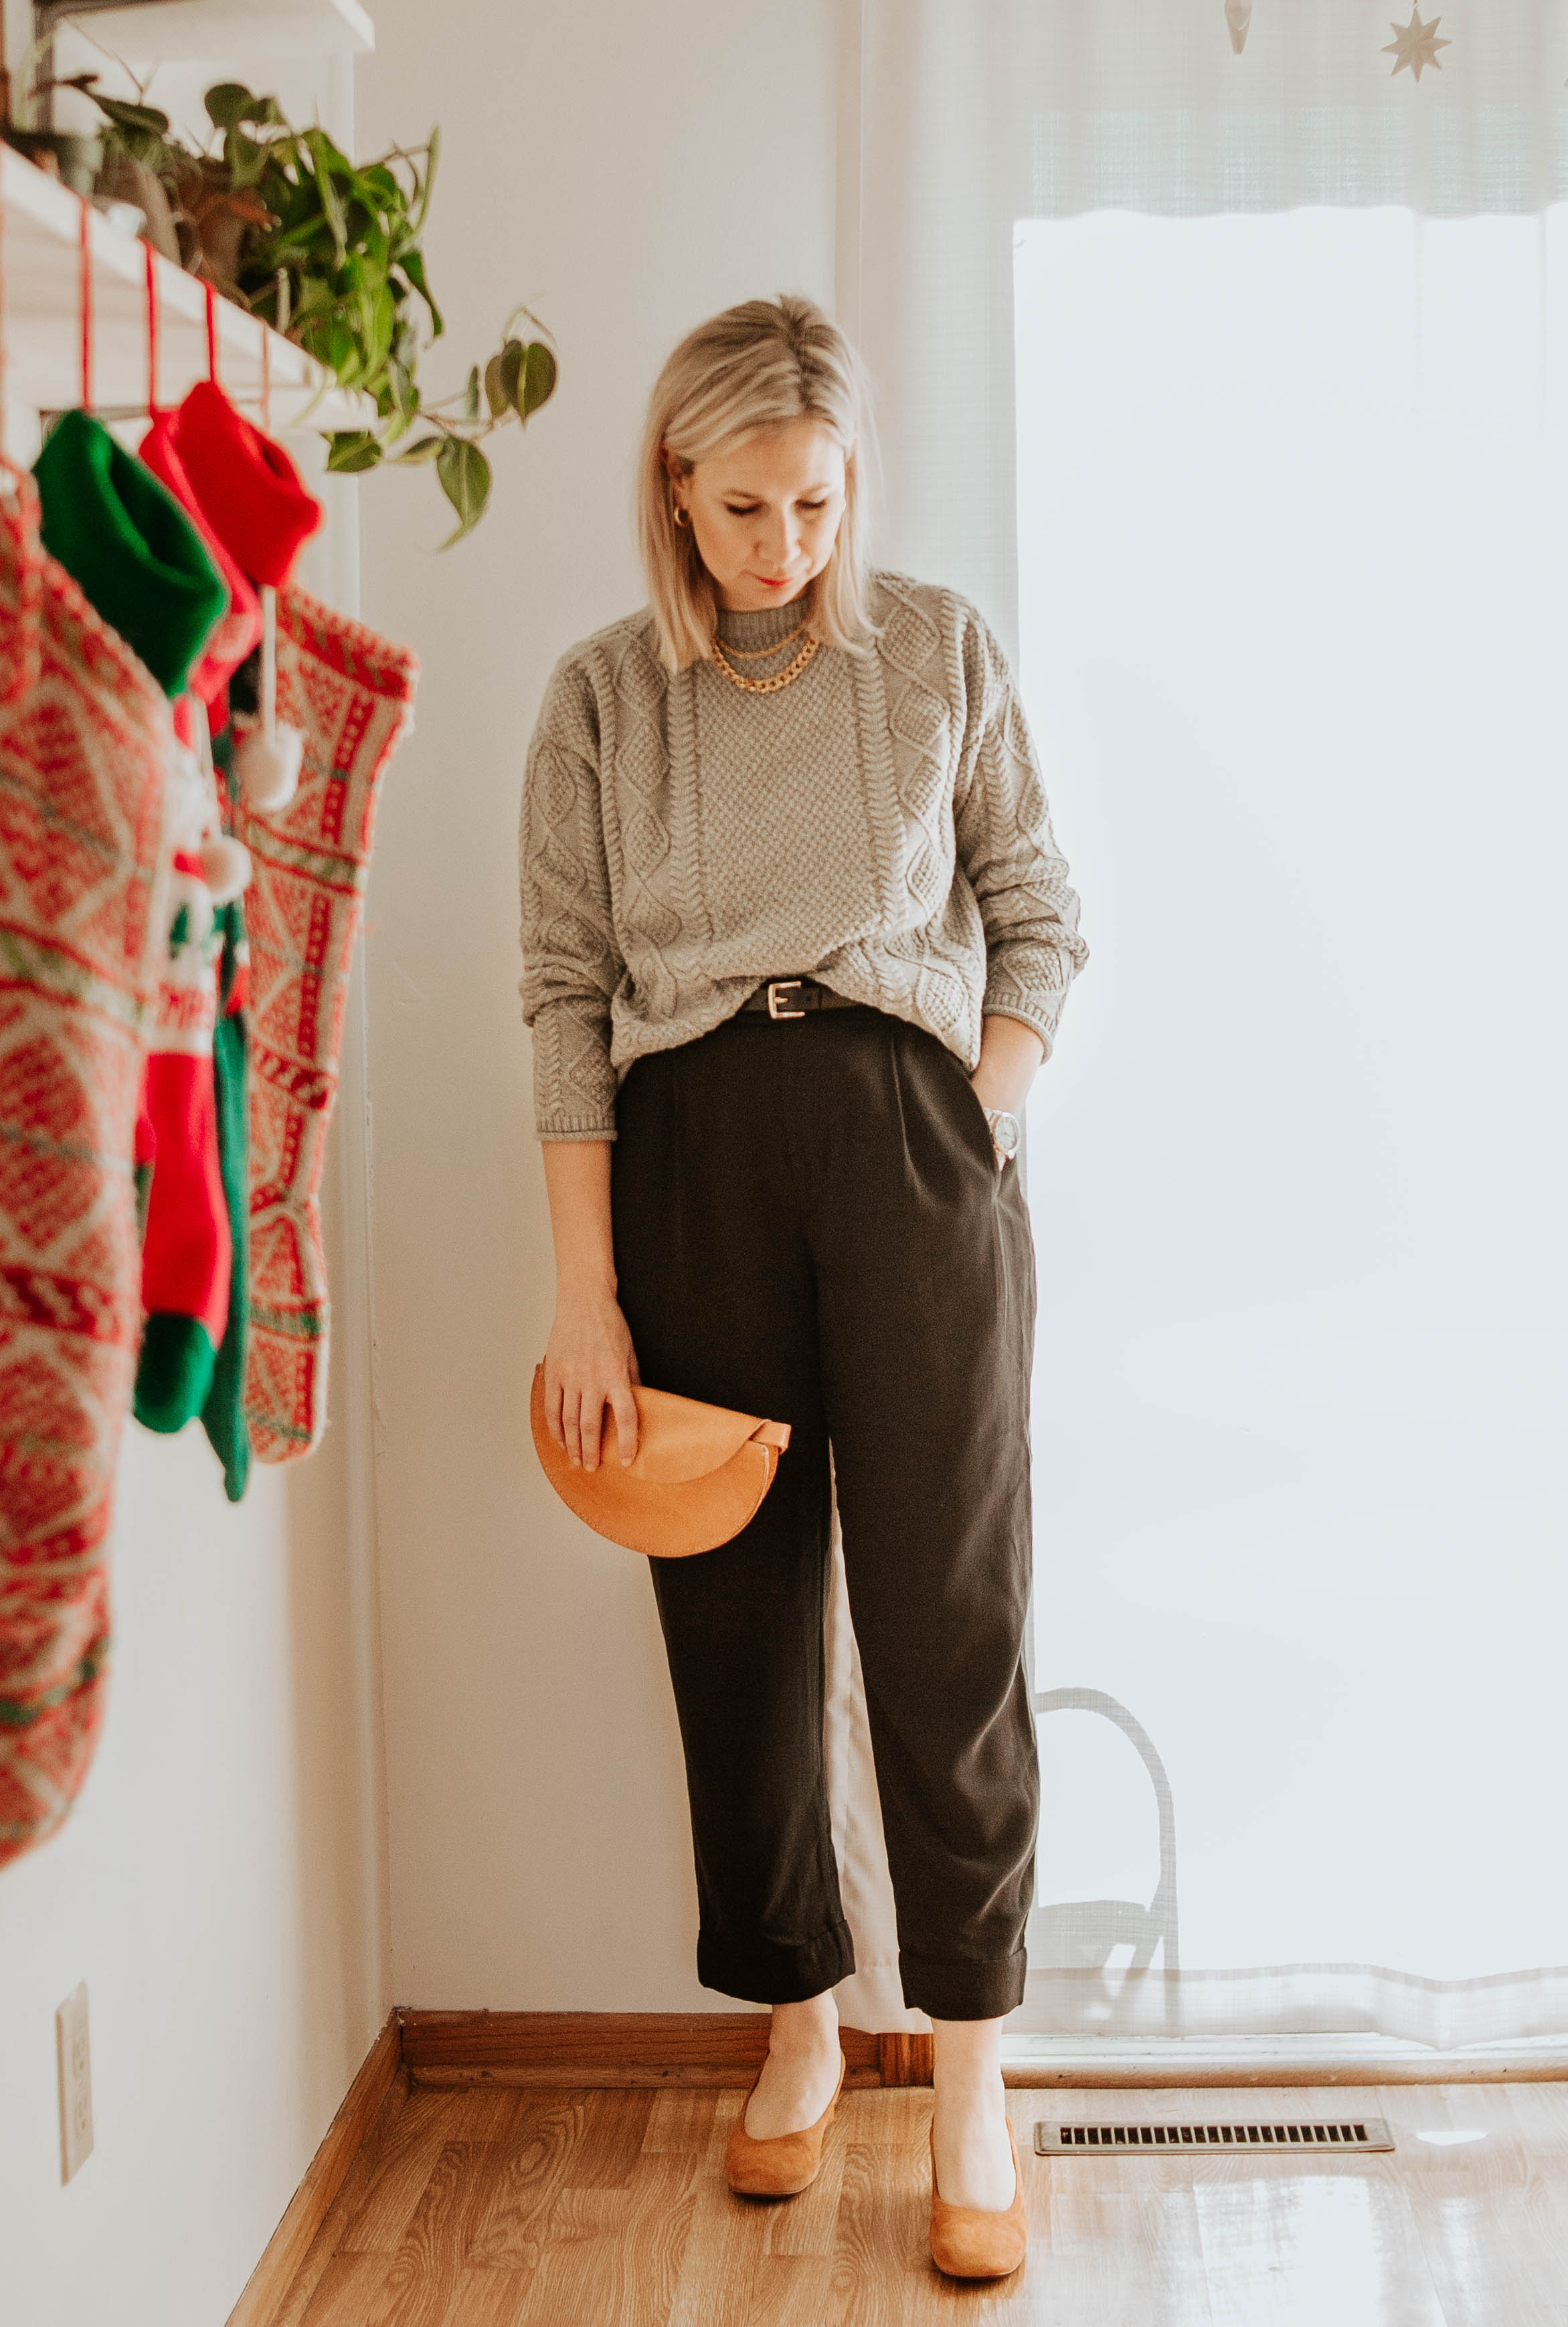 Mini Holiday Lookbook Featuring Ethical Fashion, tradlands fisher sweater, everlane pleat pants, tree fairfax bag, bumbag, belt bag, everlane day heels, brown suede heels, cognac heels